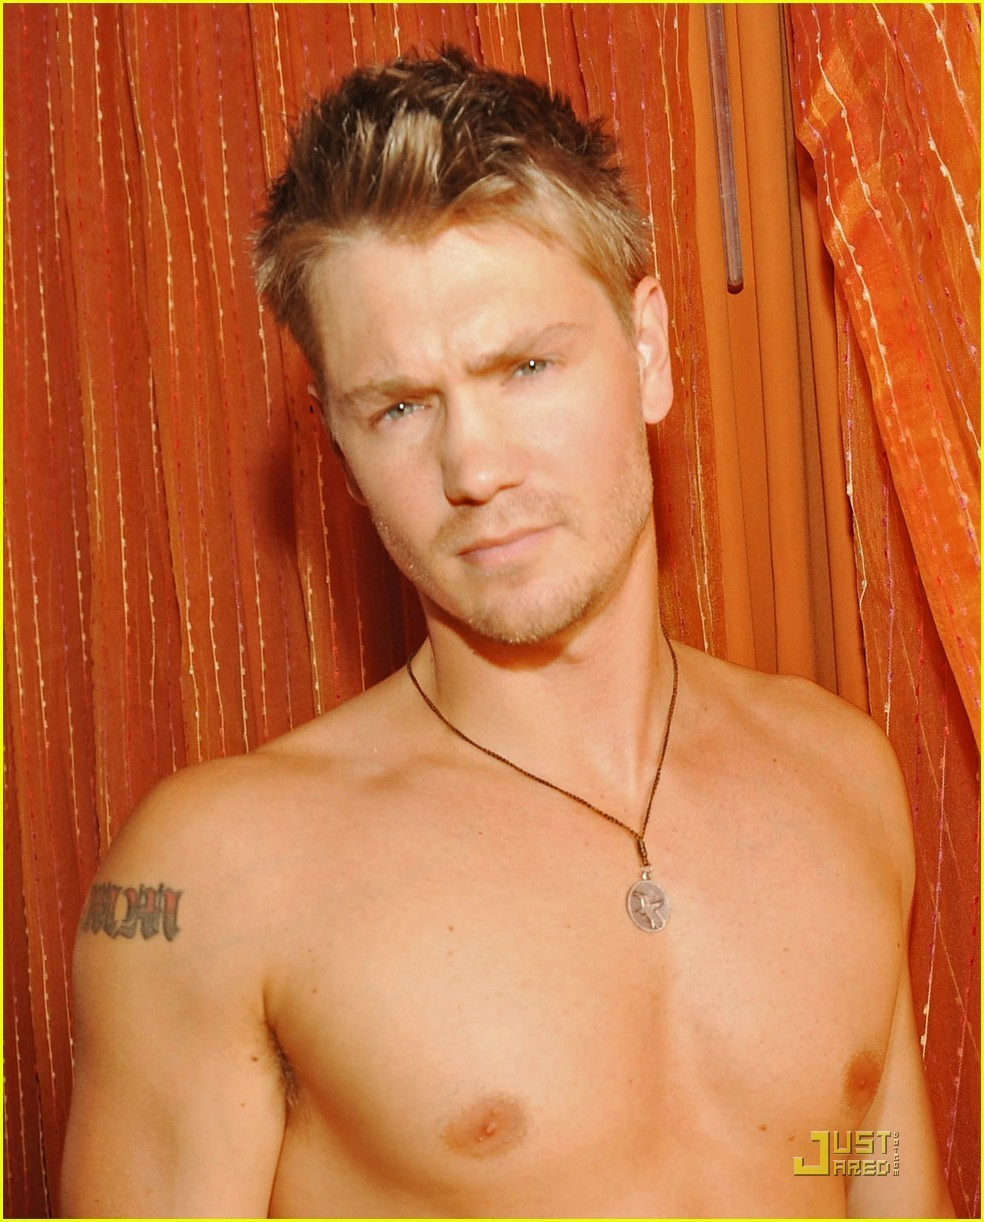 Chad Michael Murray Shirtless Beach Party one tree hill 7924168 984 1222 And here is the nude empowering pic from Harper's Bazaar: